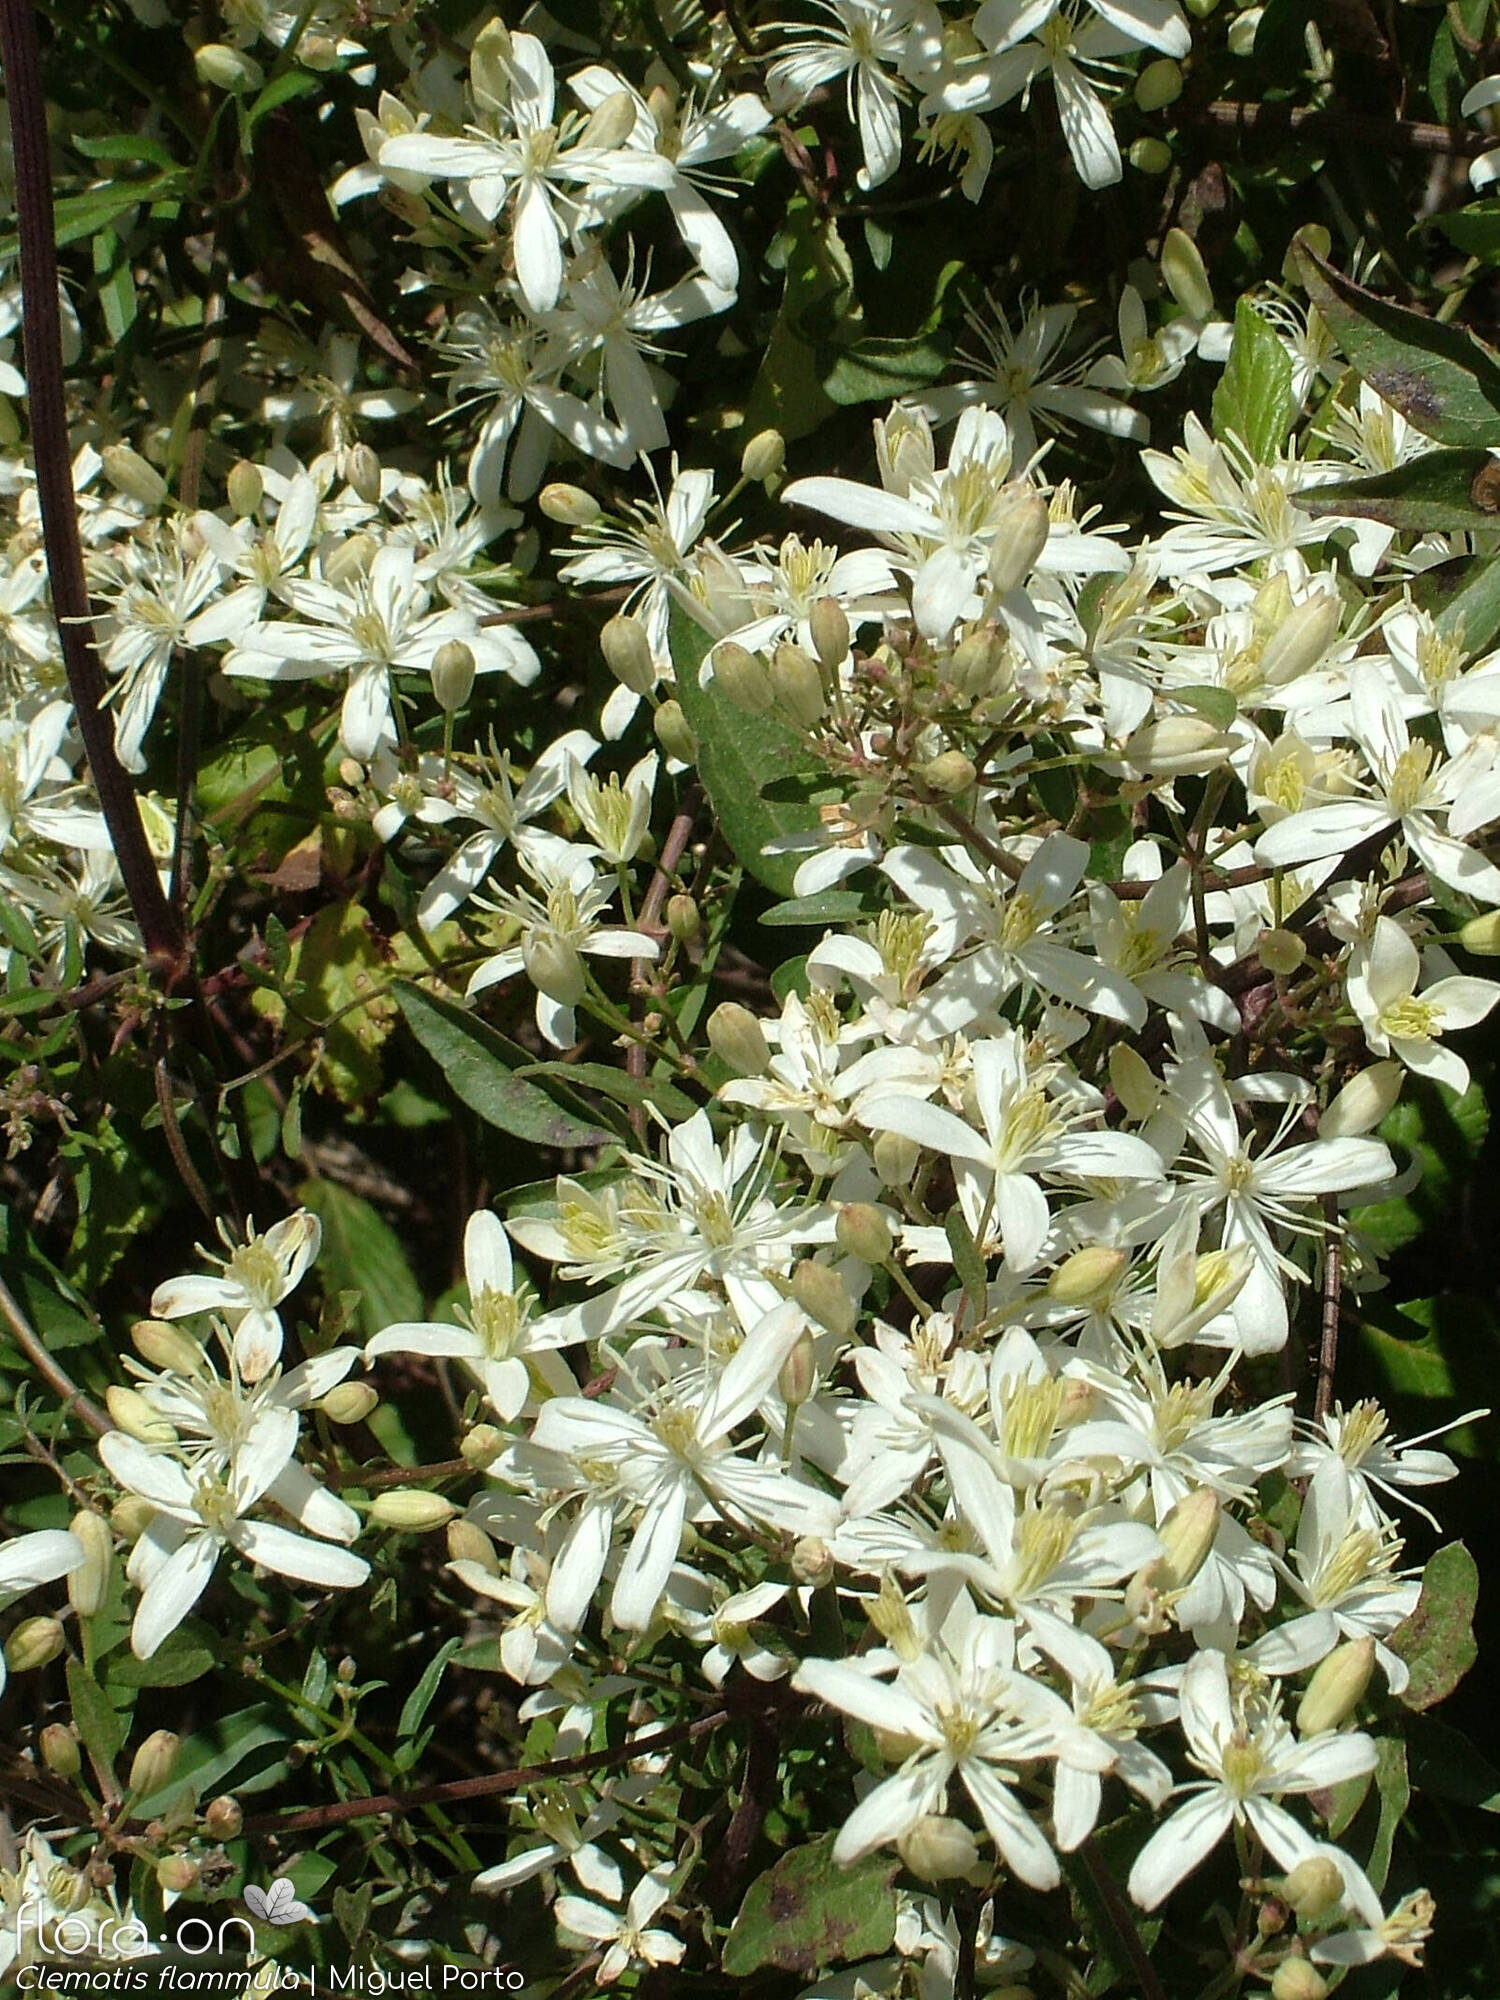 Clematis flammula - Flor (geral) | Miguel Porto; CC BY-NC 4.0